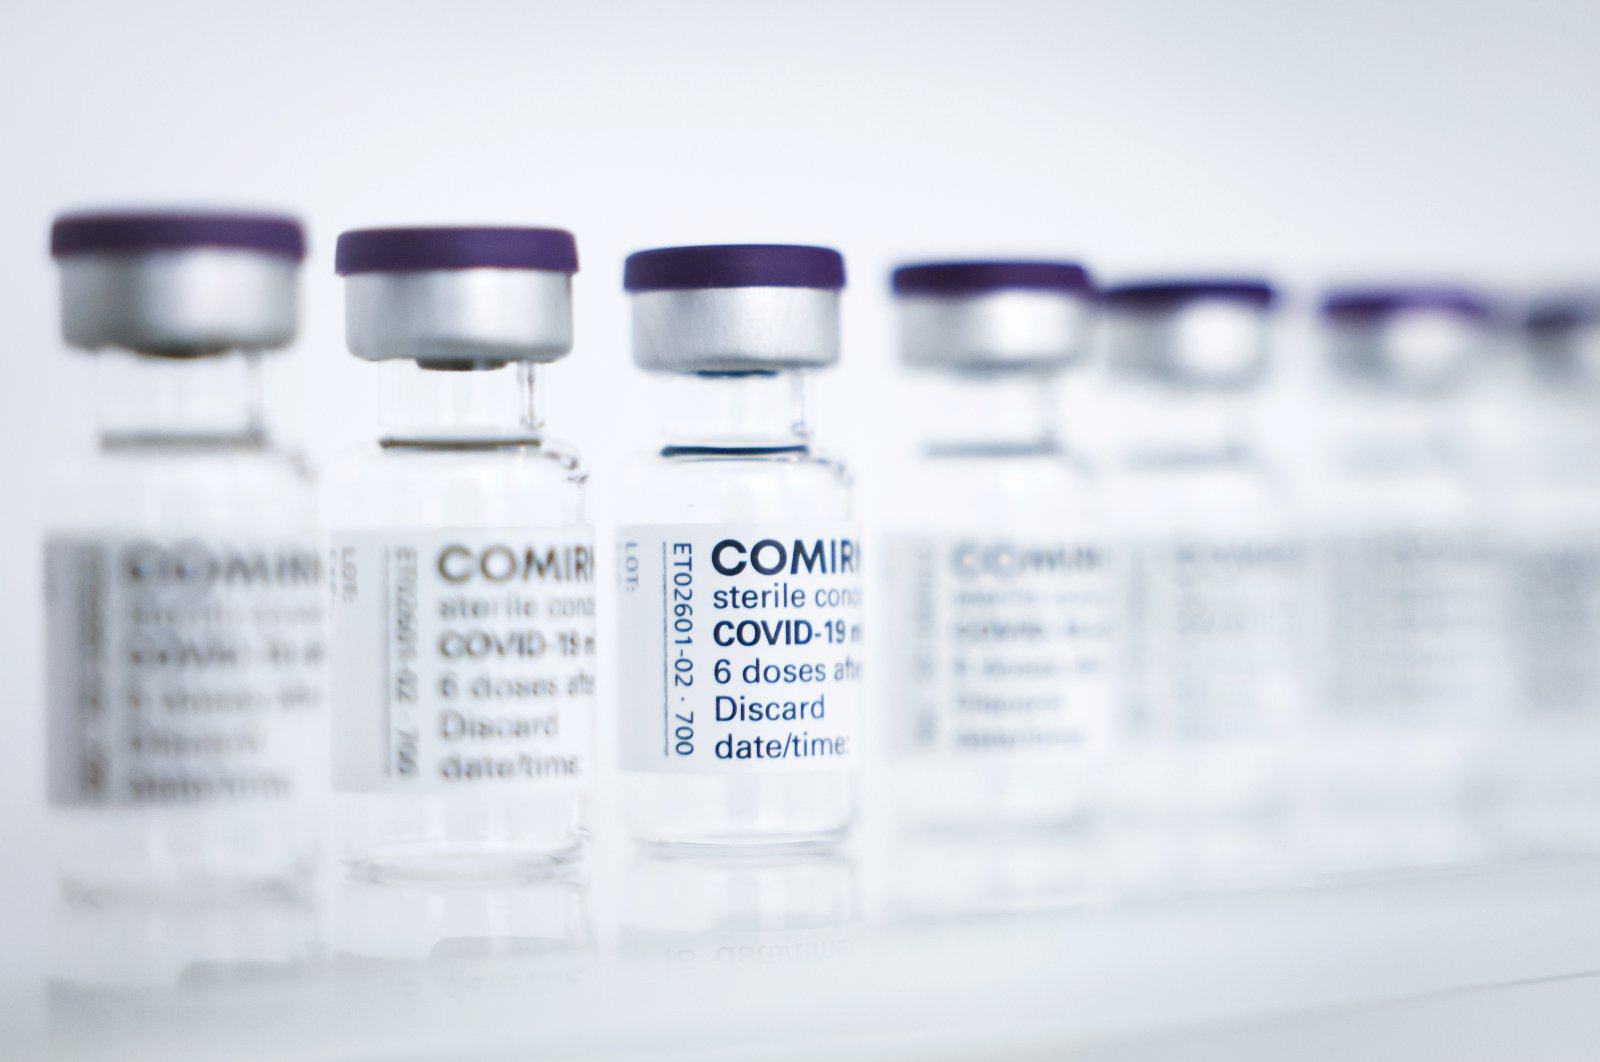 Vials for the Pfizer-BioNTech vaccine are lined up at production facilities in Reinbek near Hamburg, Germany, April 30, 2021. (EPA Photo)